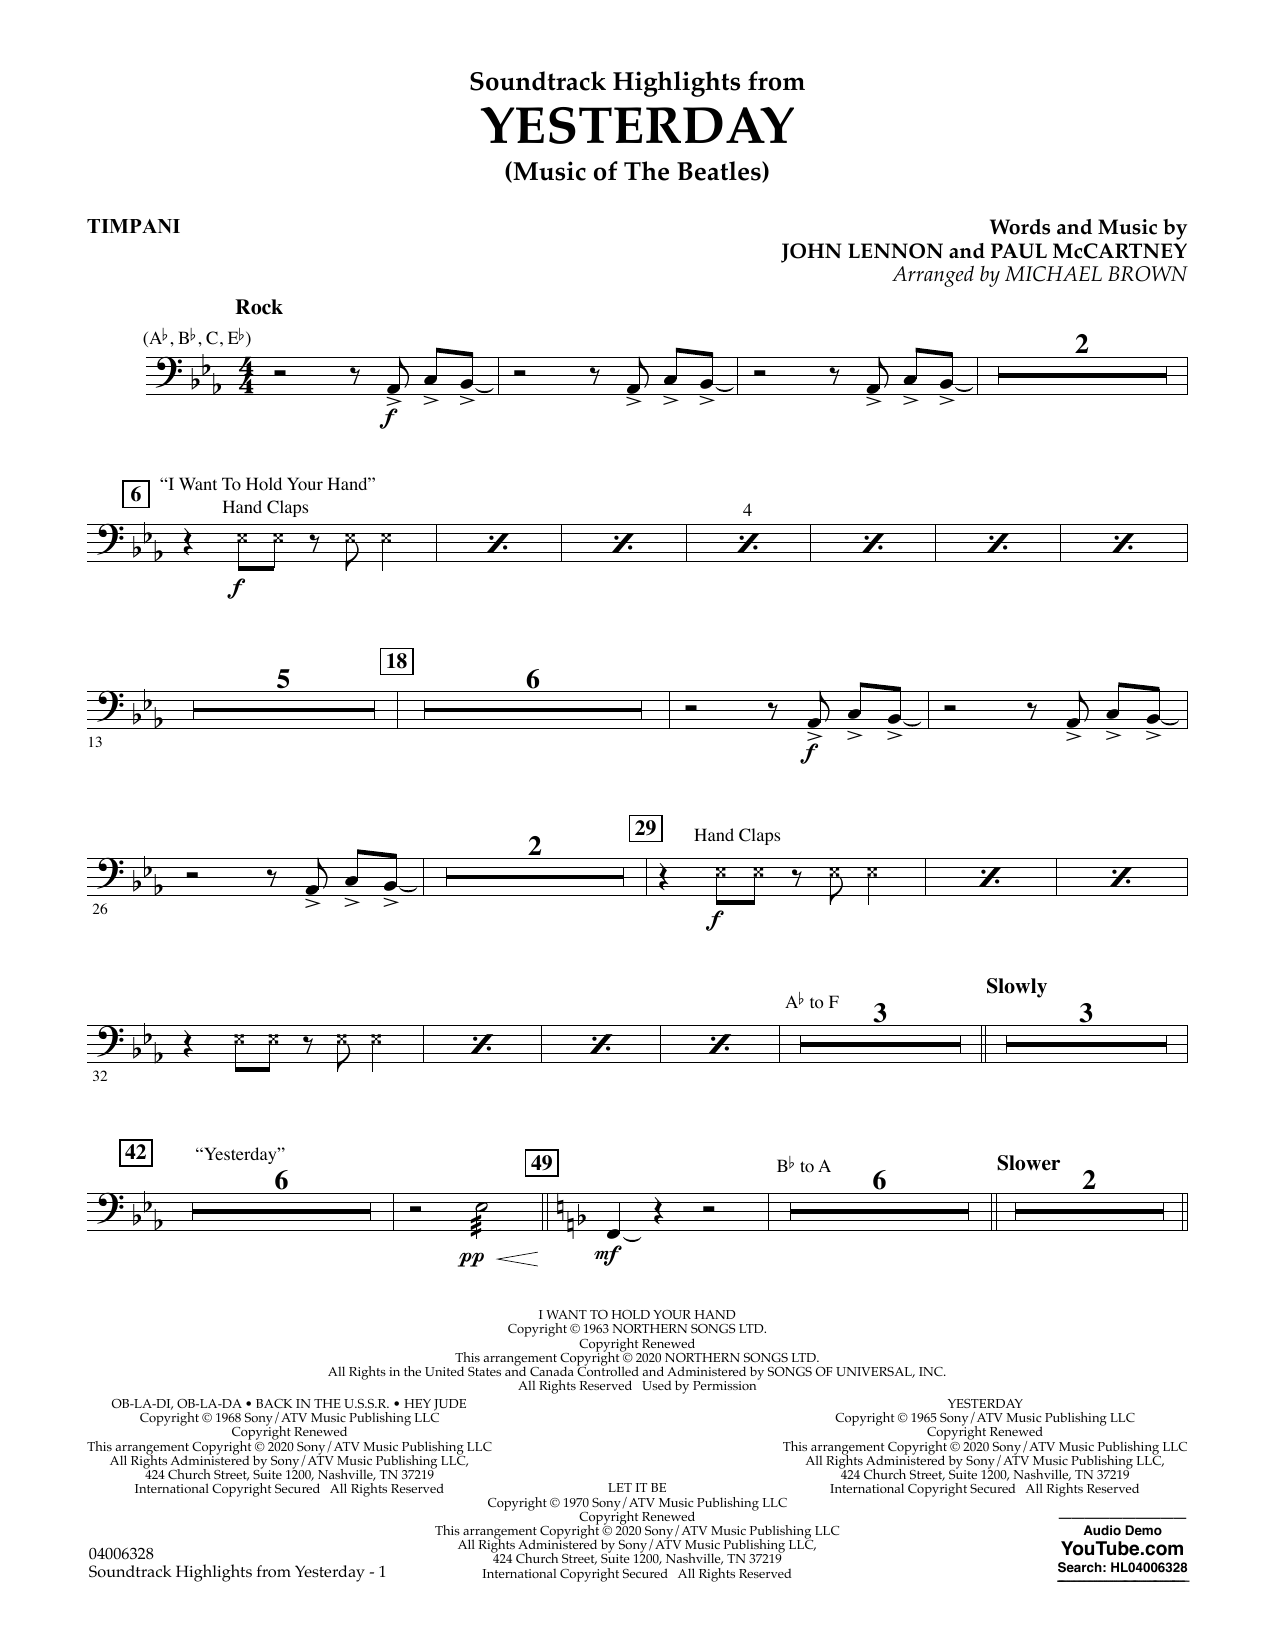 The Beatles Highlights from Yesterday (Music Of The Beatles) (arr. Michael Brown) - Timpani sheet music notes and chords. Download Printable PDF.